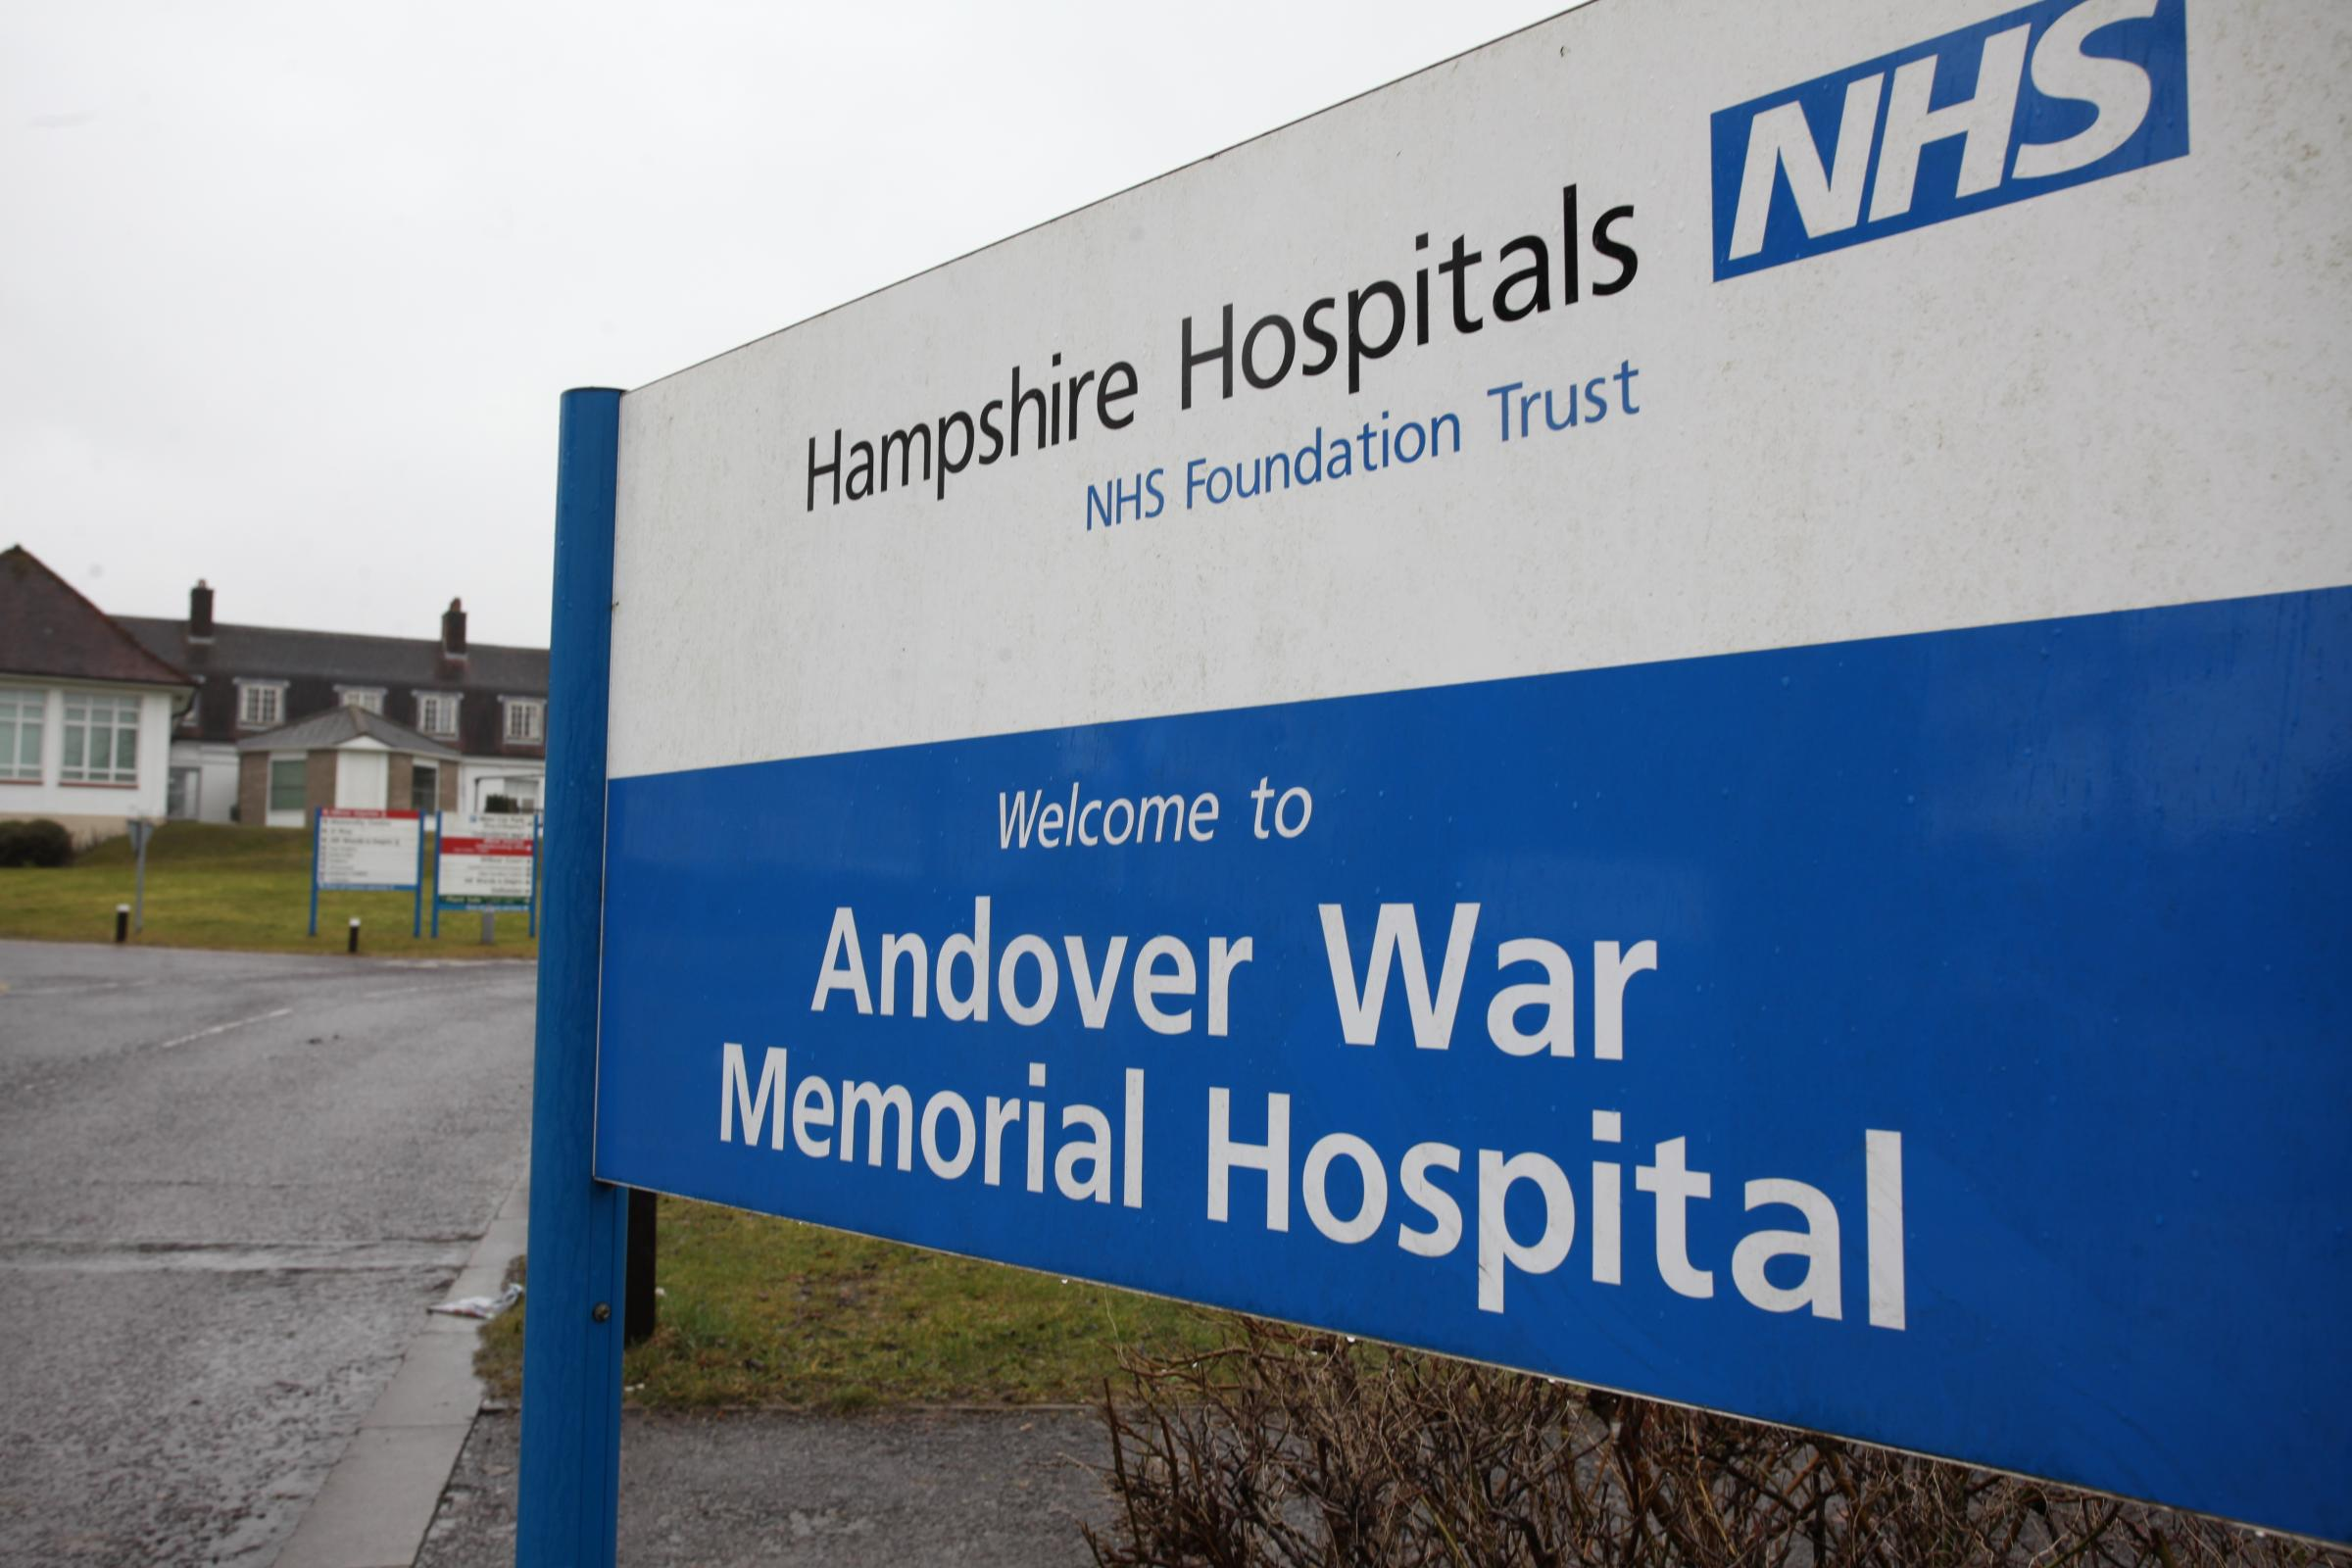 Non-urgent appointments postponed at Hampshire hospitals